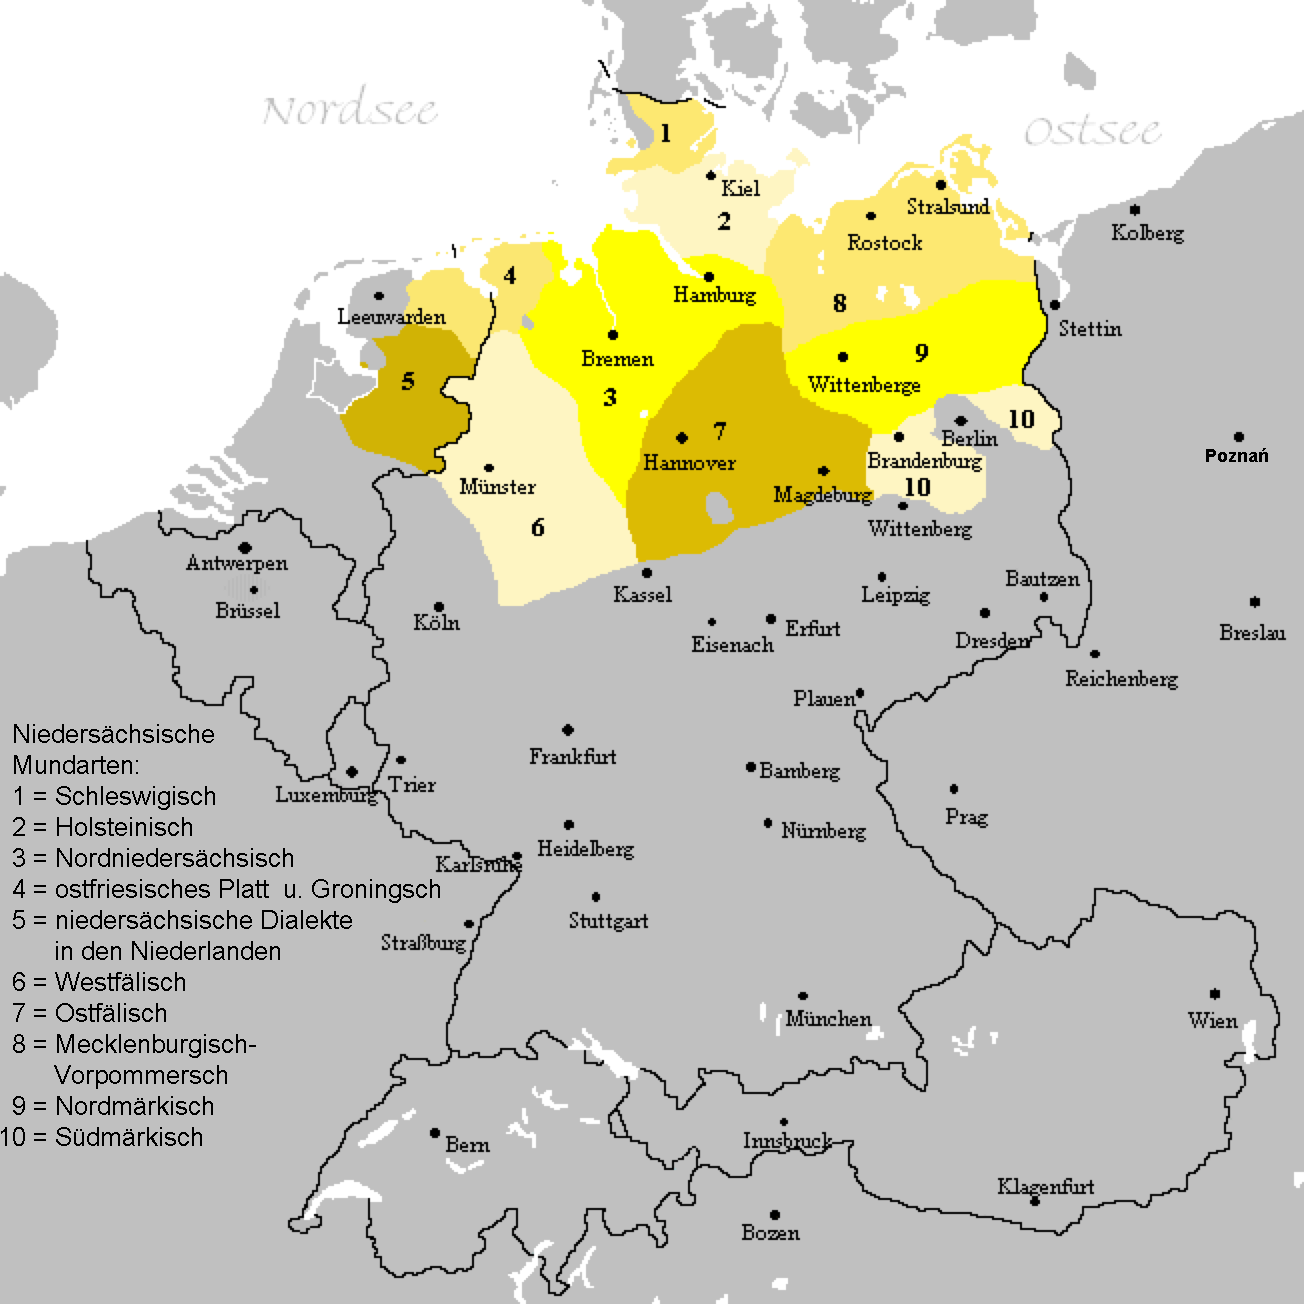 Maps showing the different Low German dialects.